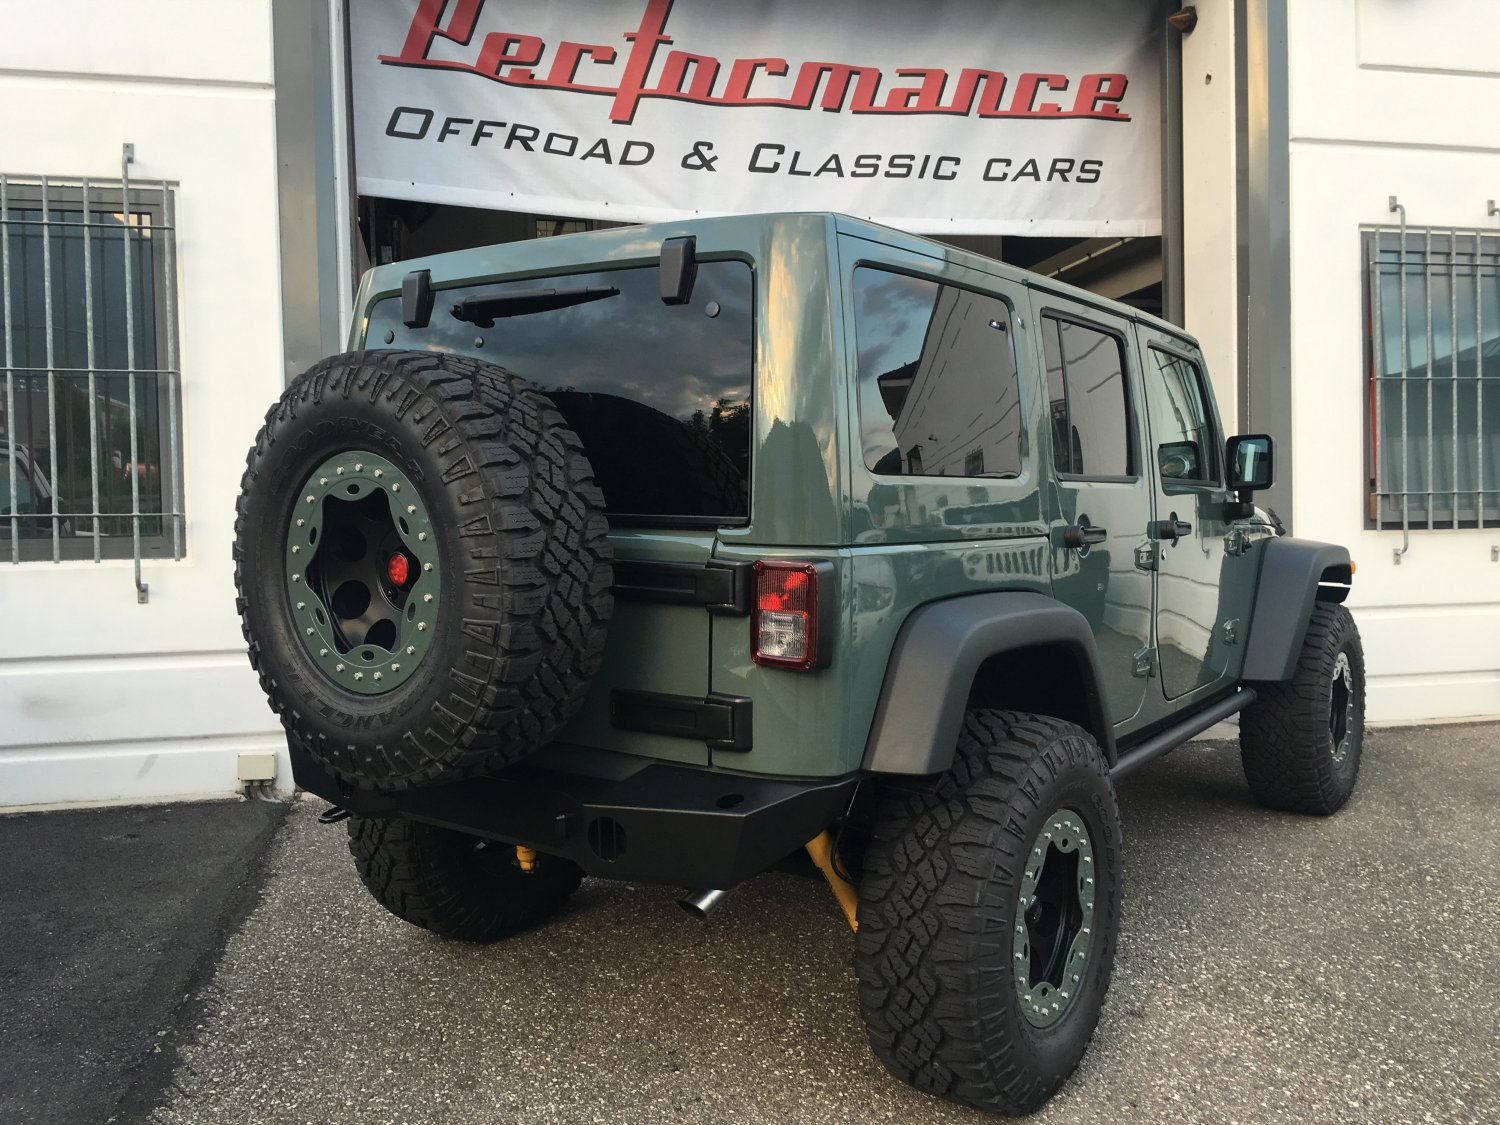 jeep wrangler rubicon unlimited 2 8 crd euro 6 jeep off road performance invest. Black Bedroom Furniture Sets. Home Design Ideas